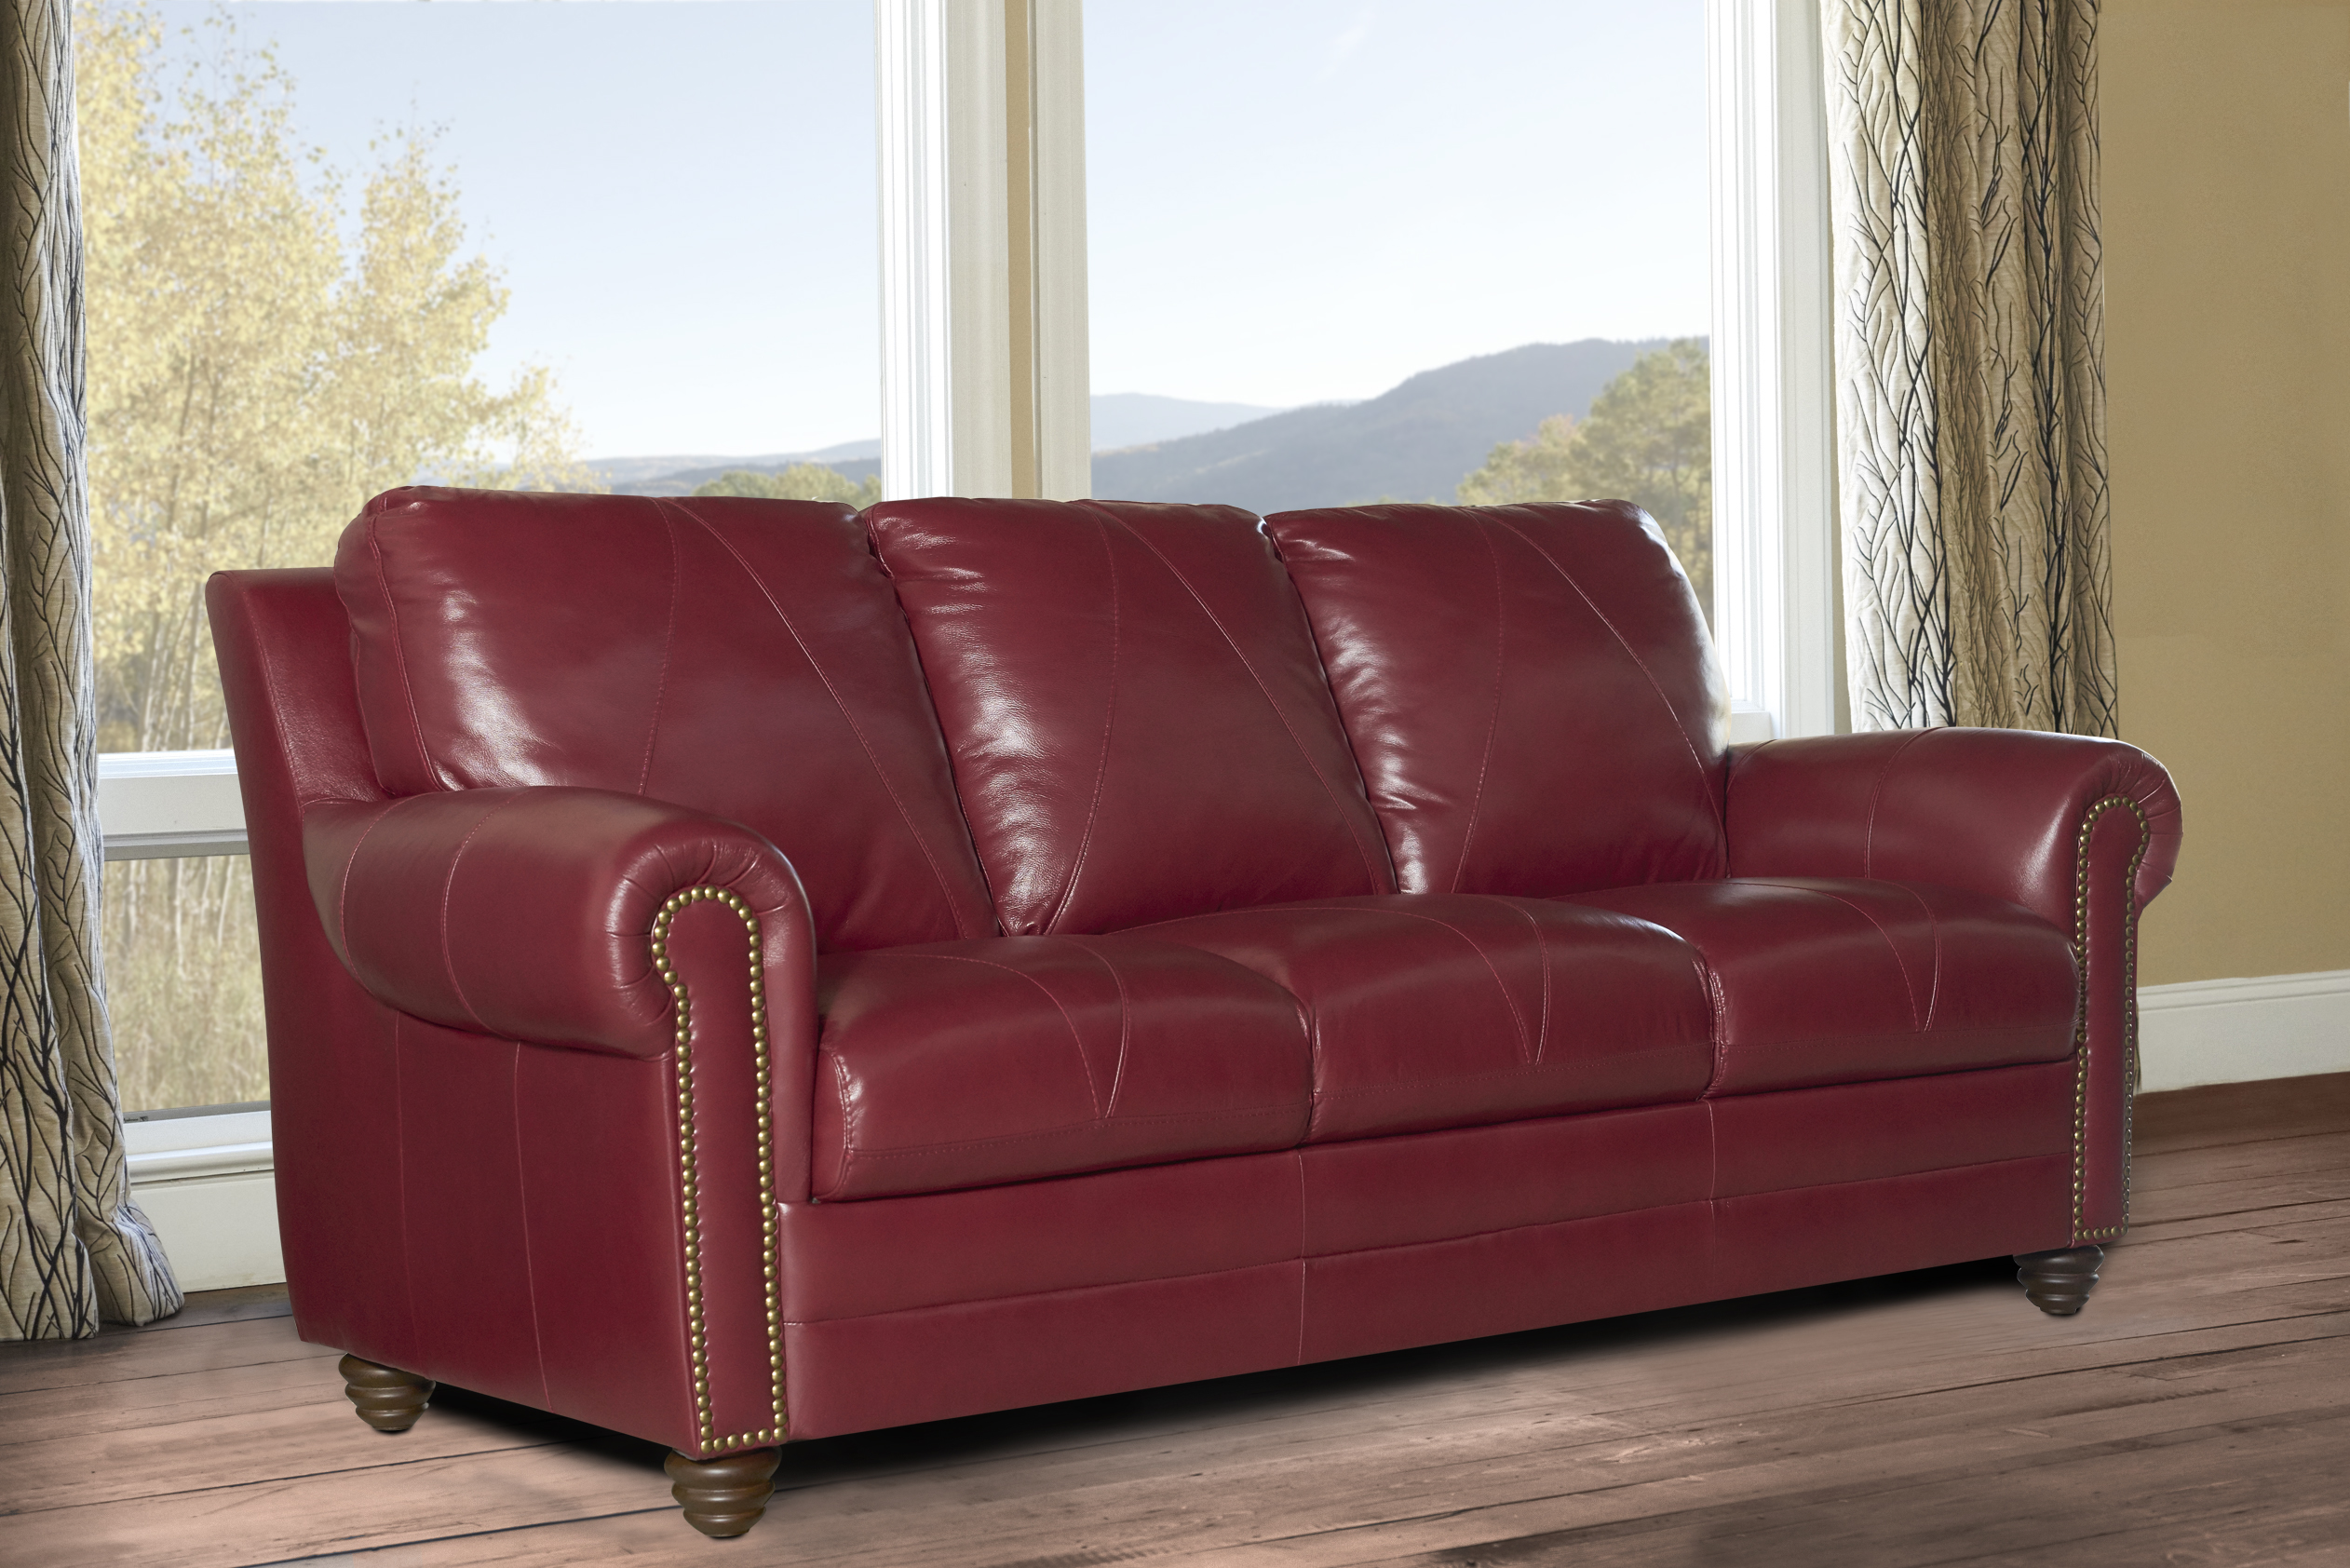 New Luke Leather Weston Cherry Red 3 Piece Set Sofa Loveseat Chair Free Ship